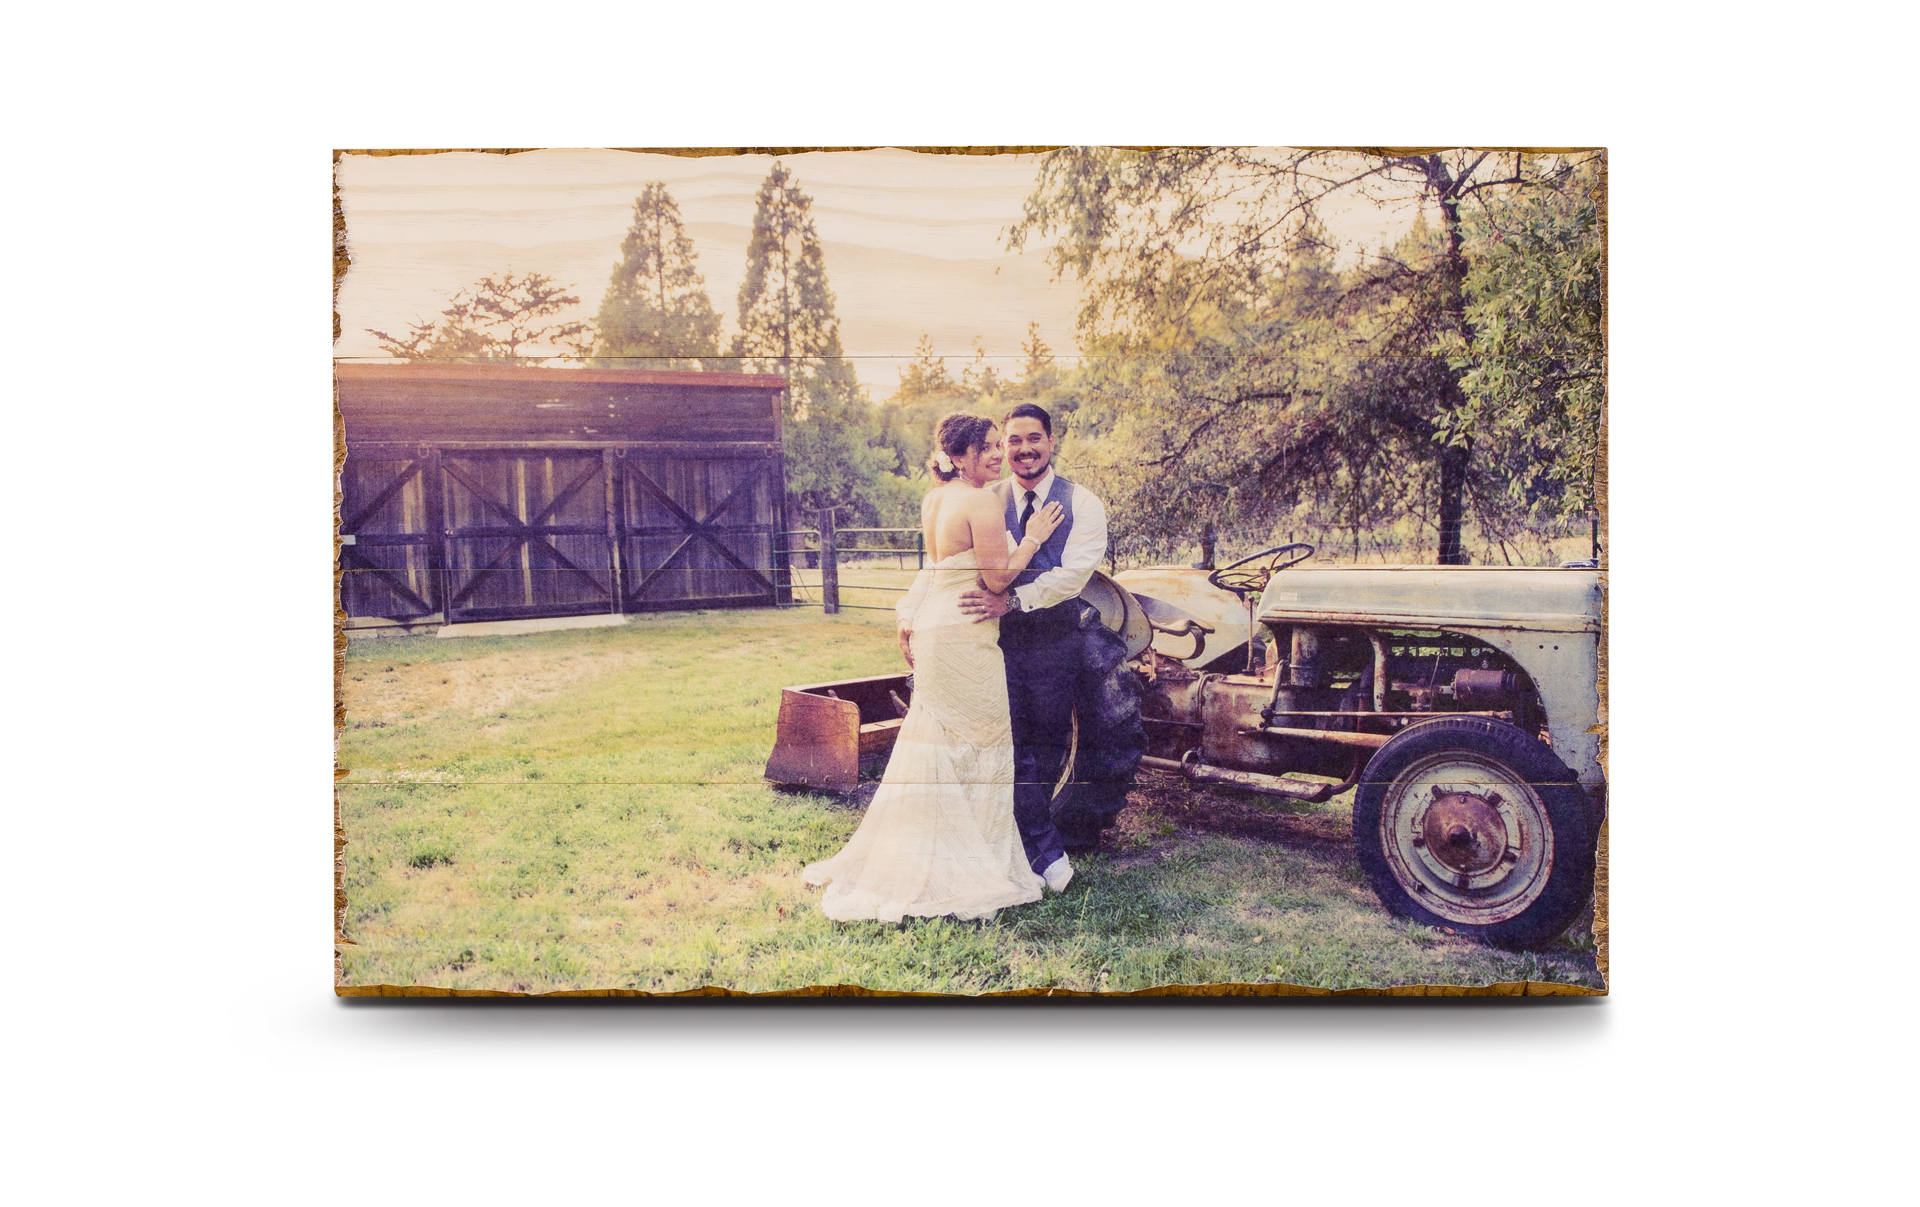 photo print on wood